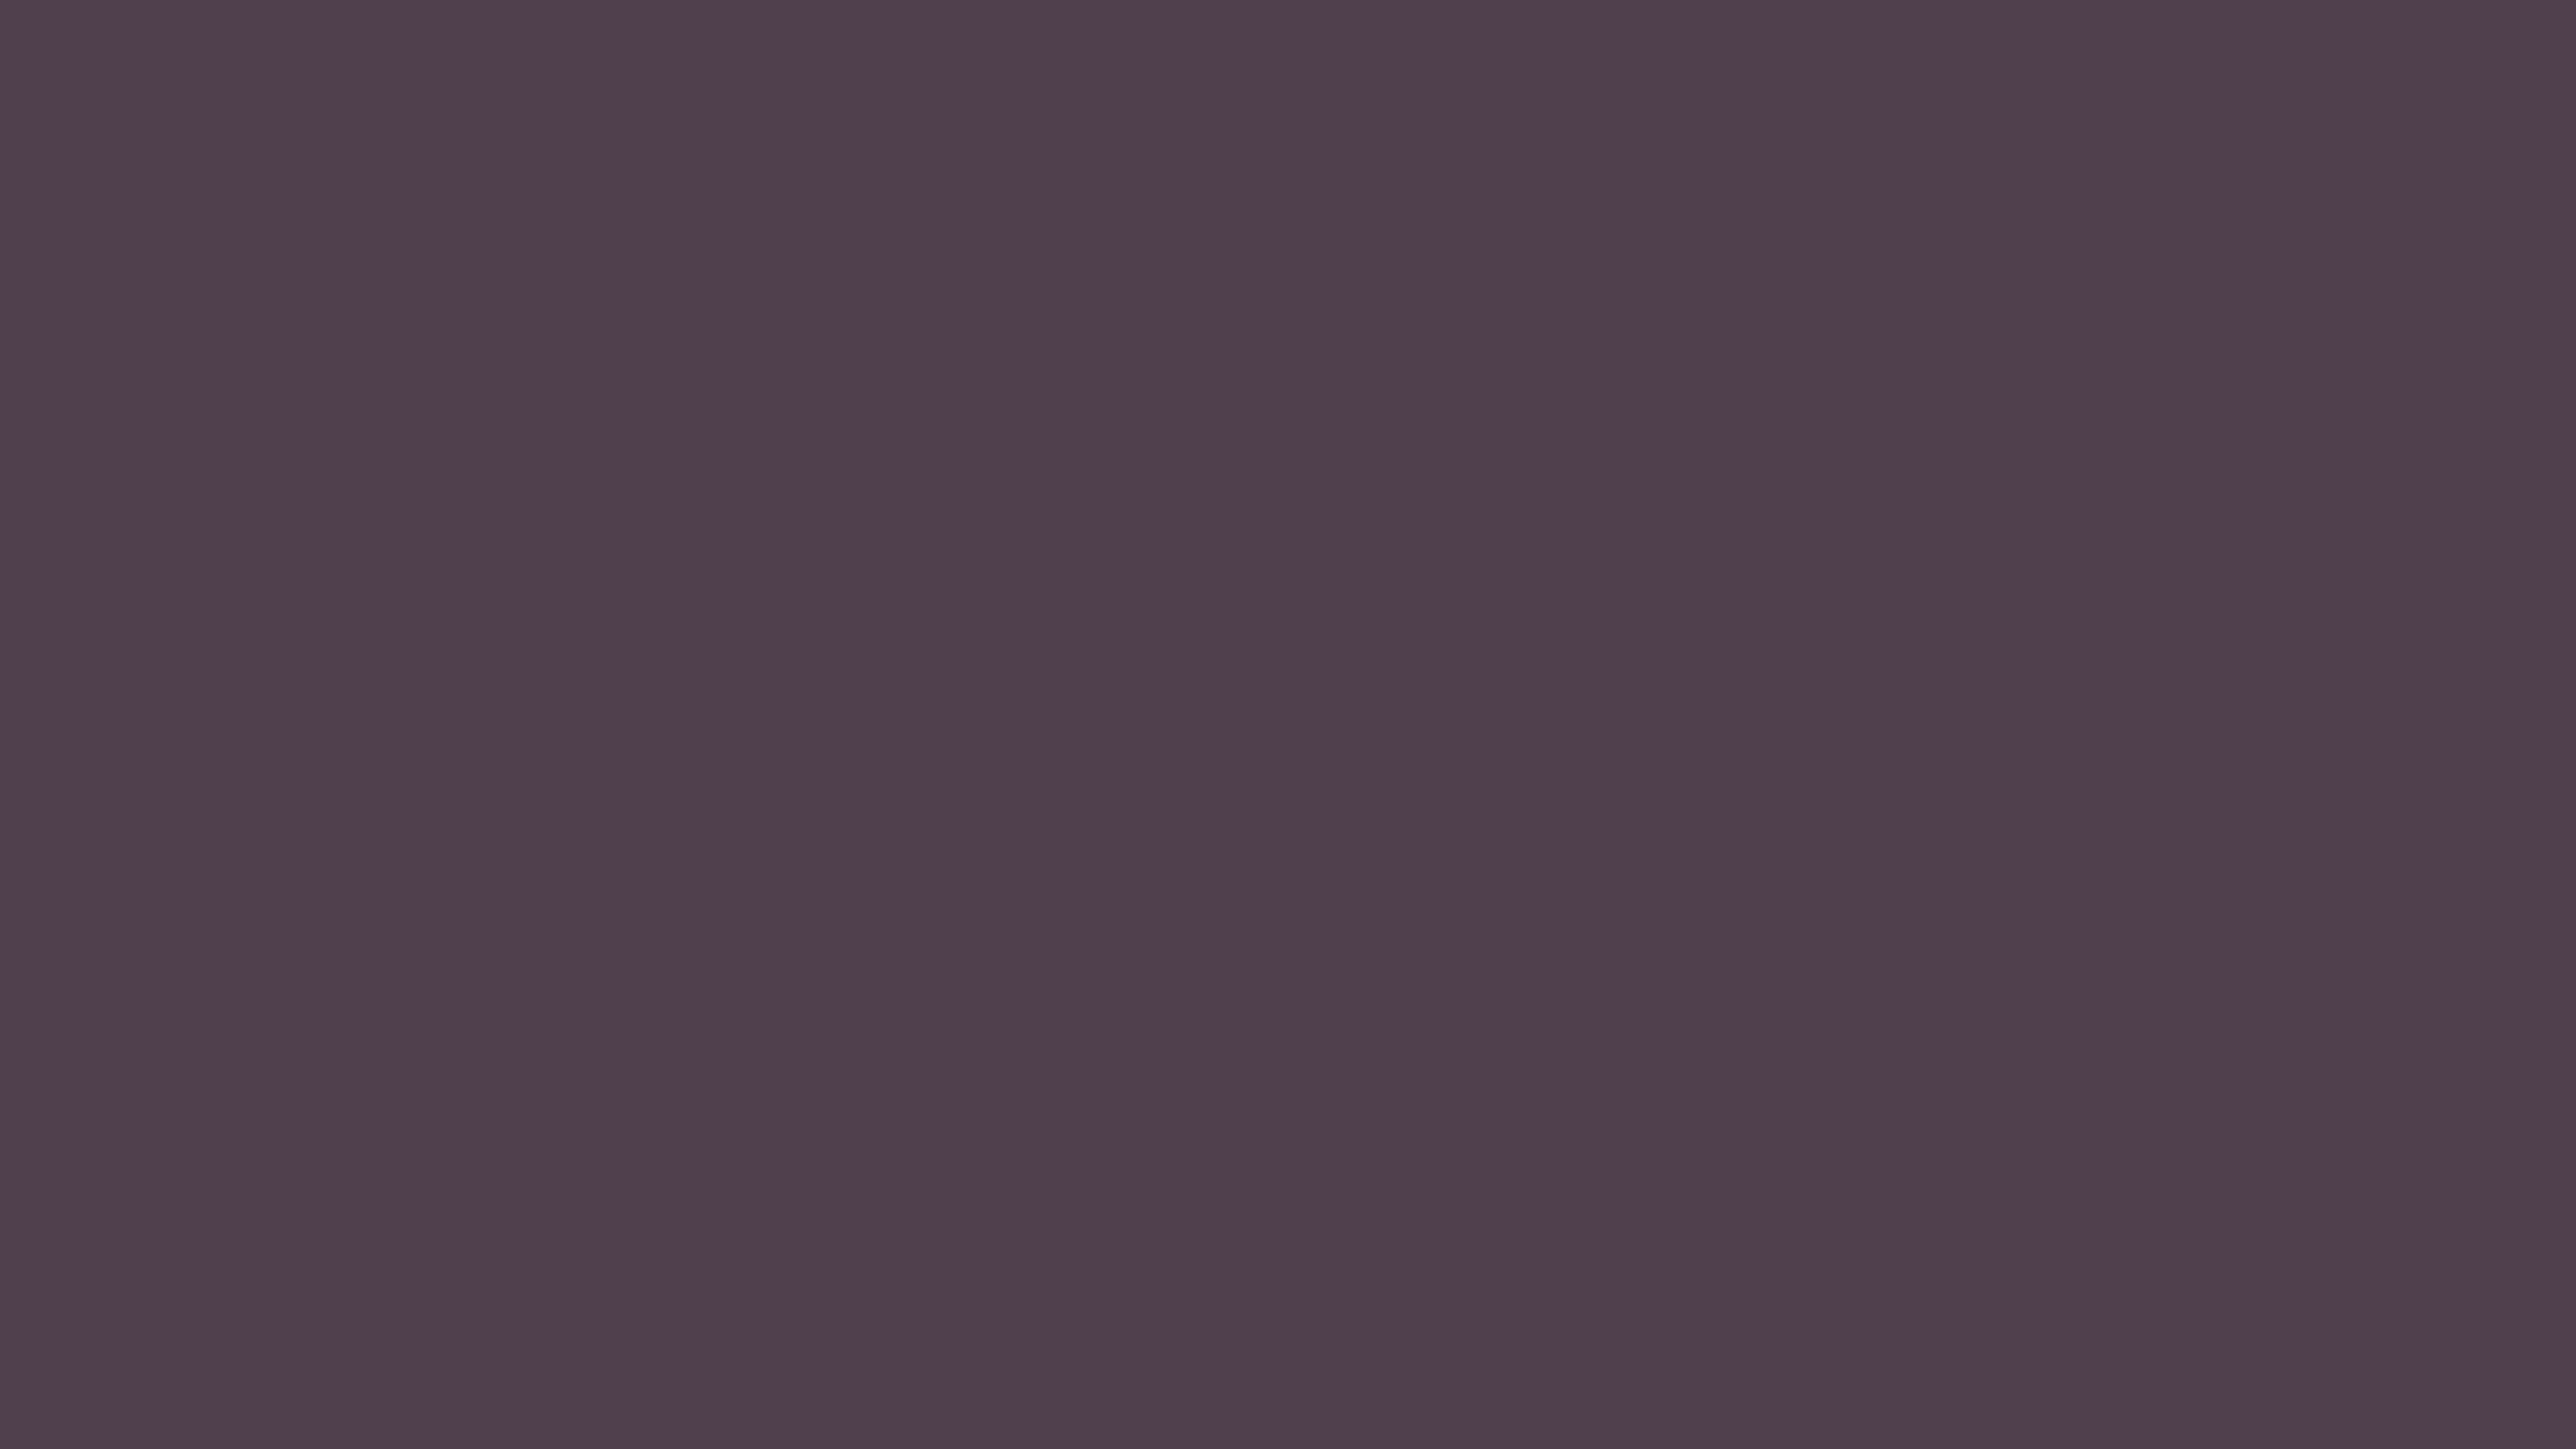 3840x2160 Purple Taupe Solid Color Background